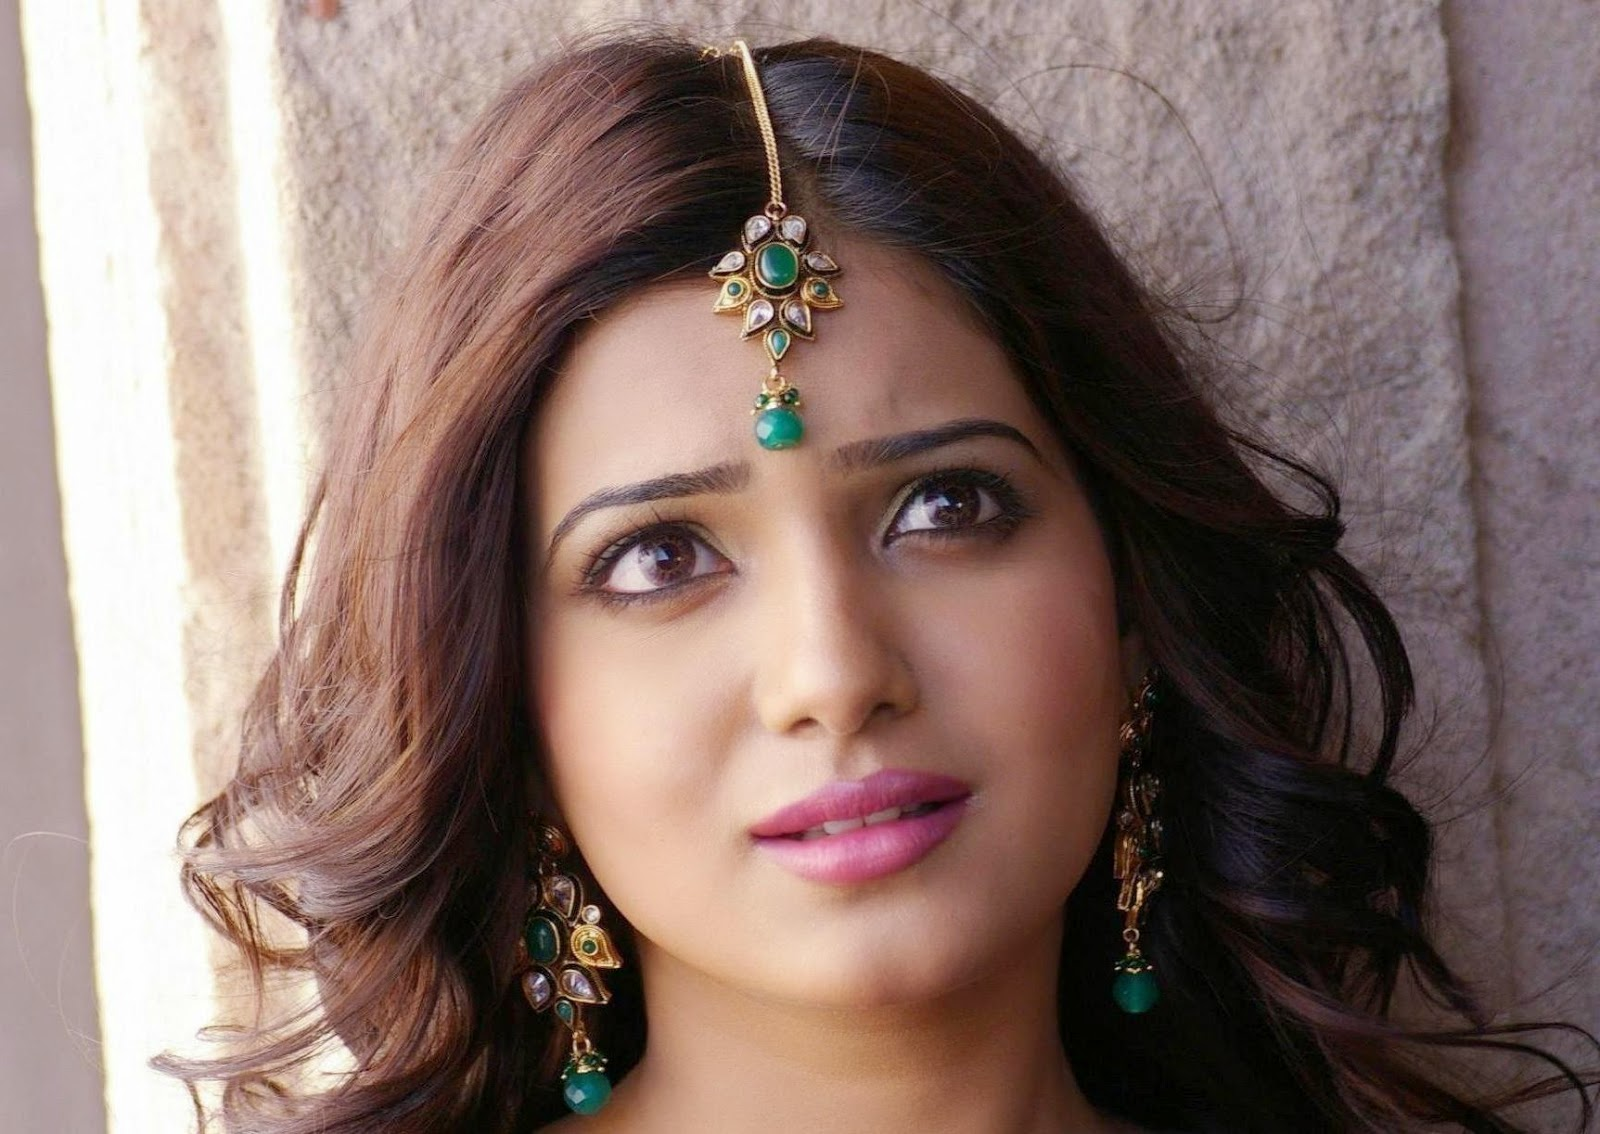 tamil stars hd wallpapers download: samantha ruth prabhu hd